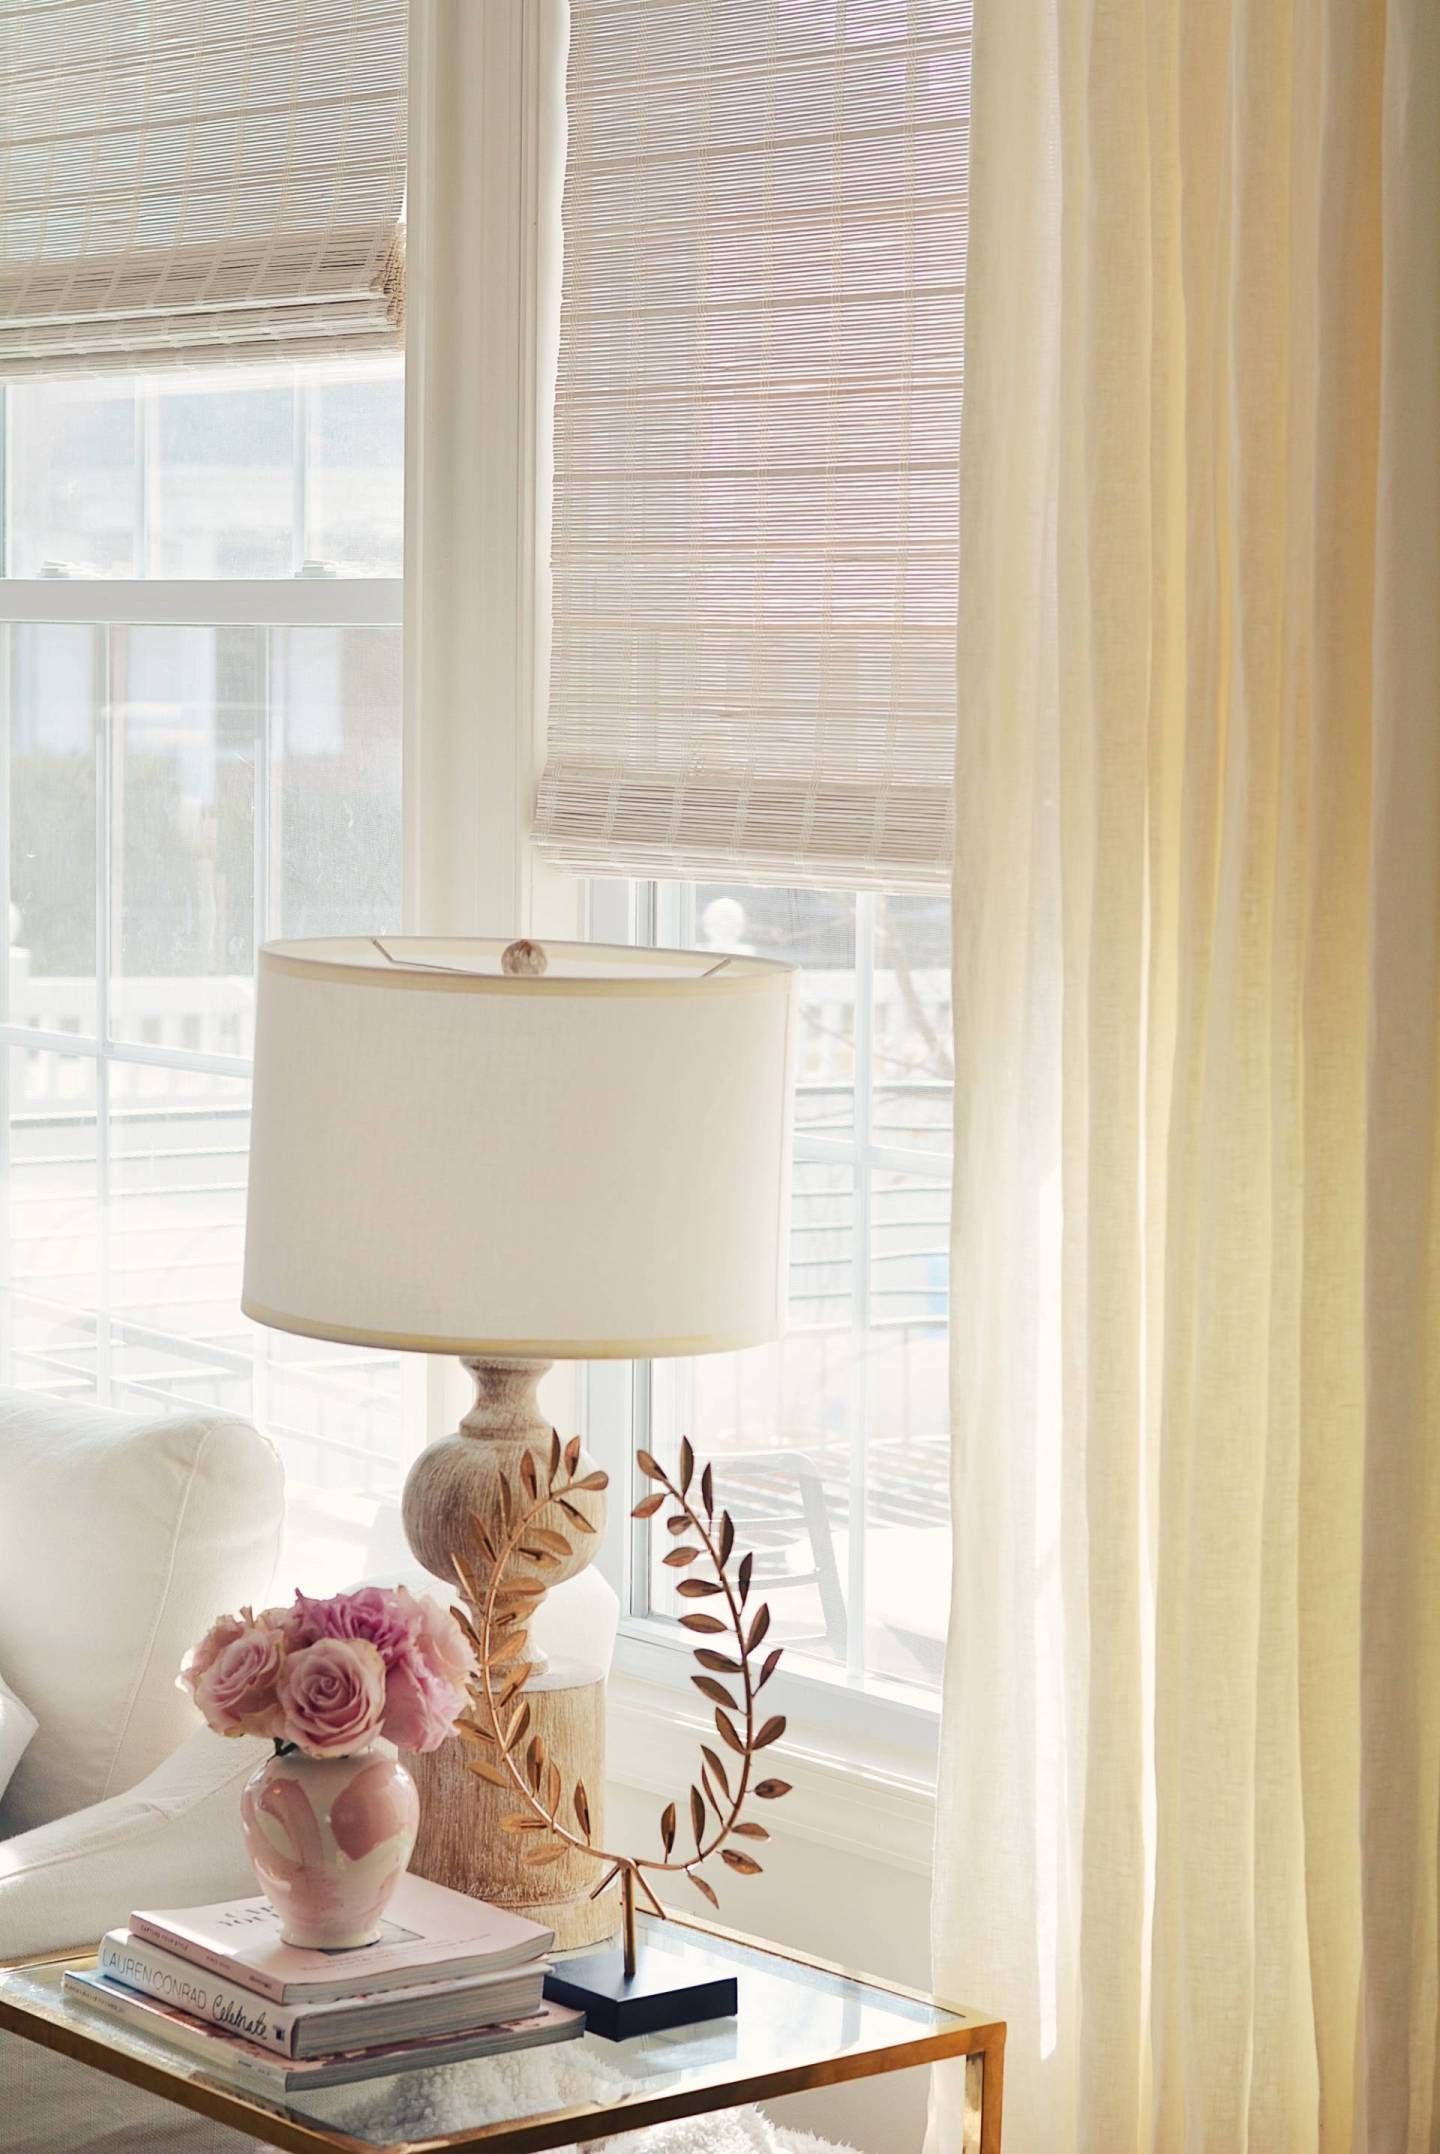 Affordable Window Treatments The Best Cheap Curtains Blinds For Your Home The Pink Dream In 2020 Curtains With Blinds Affordable Windows Cheap Curtains